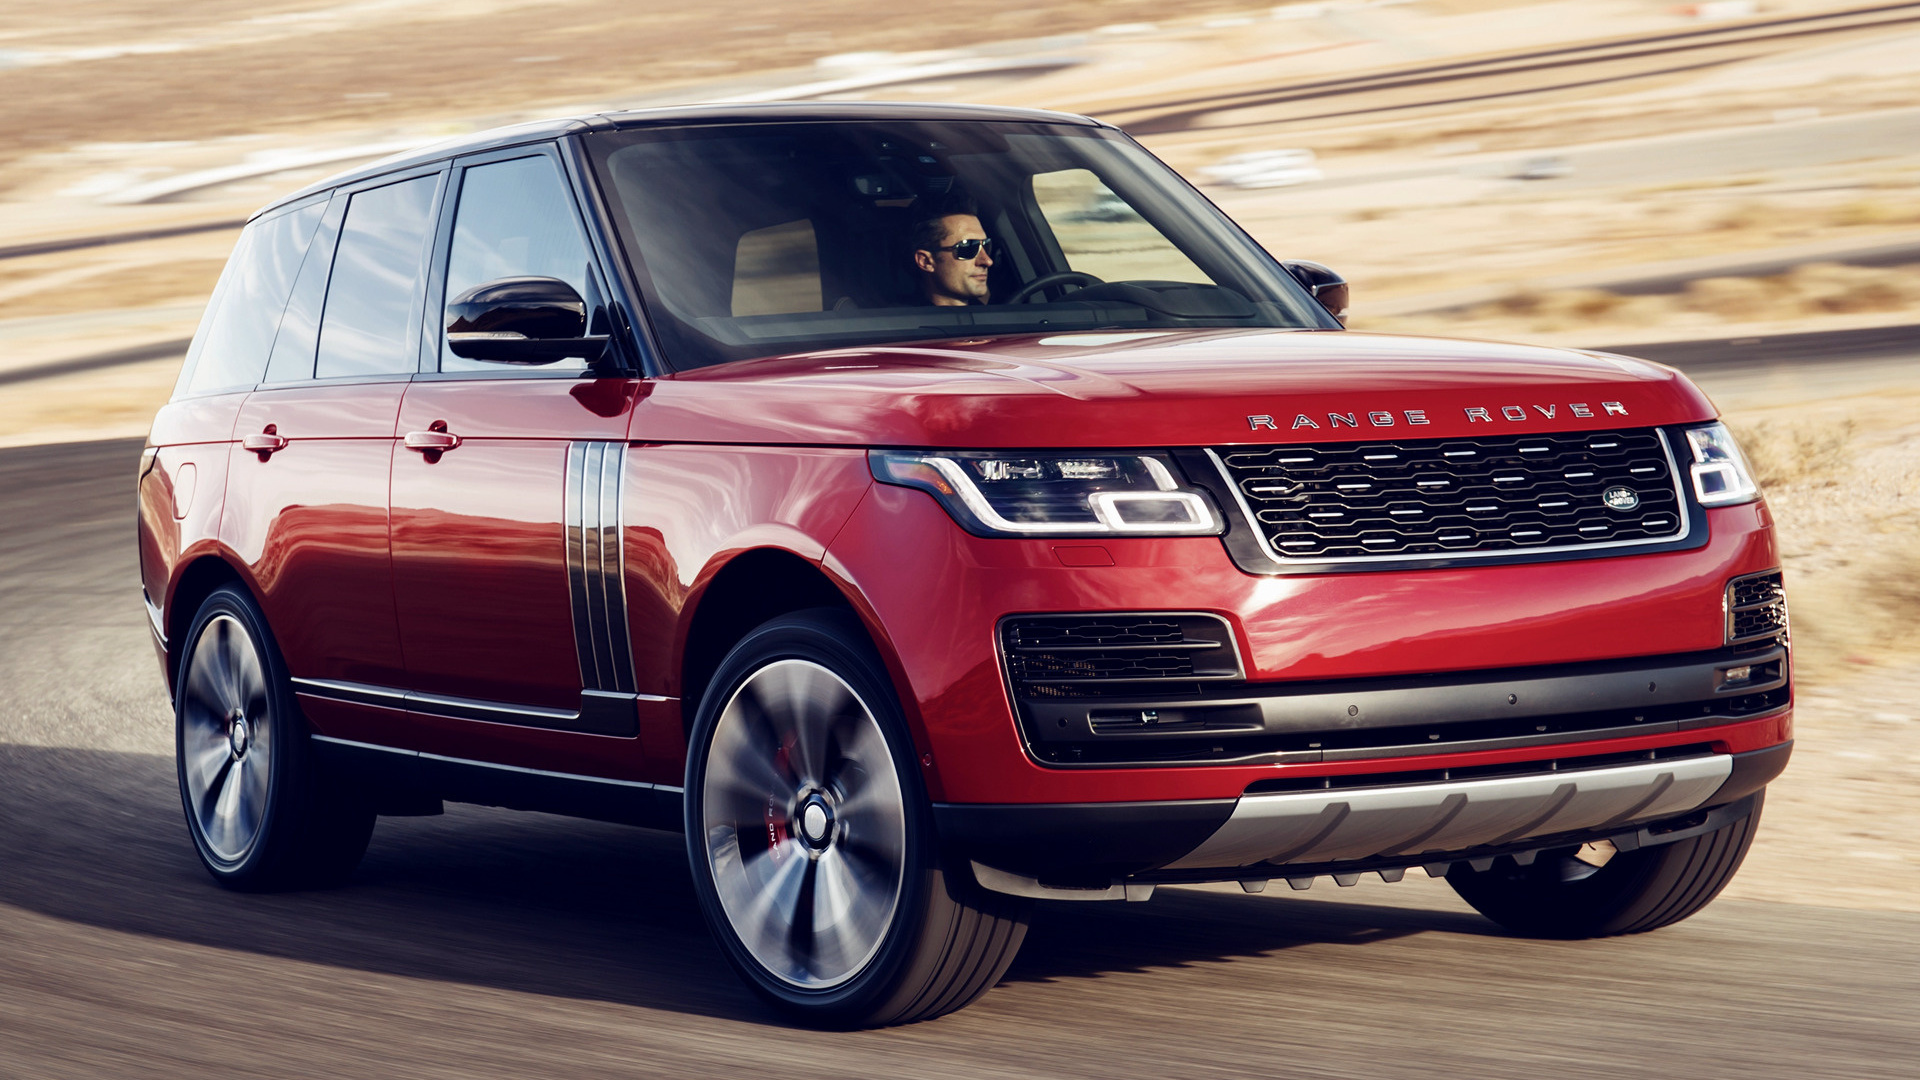 2018 range rover svautobiography dynamic us wallpapers and hd images car pixel. Black Bedroom Furniture Sets. Home Design Ideas